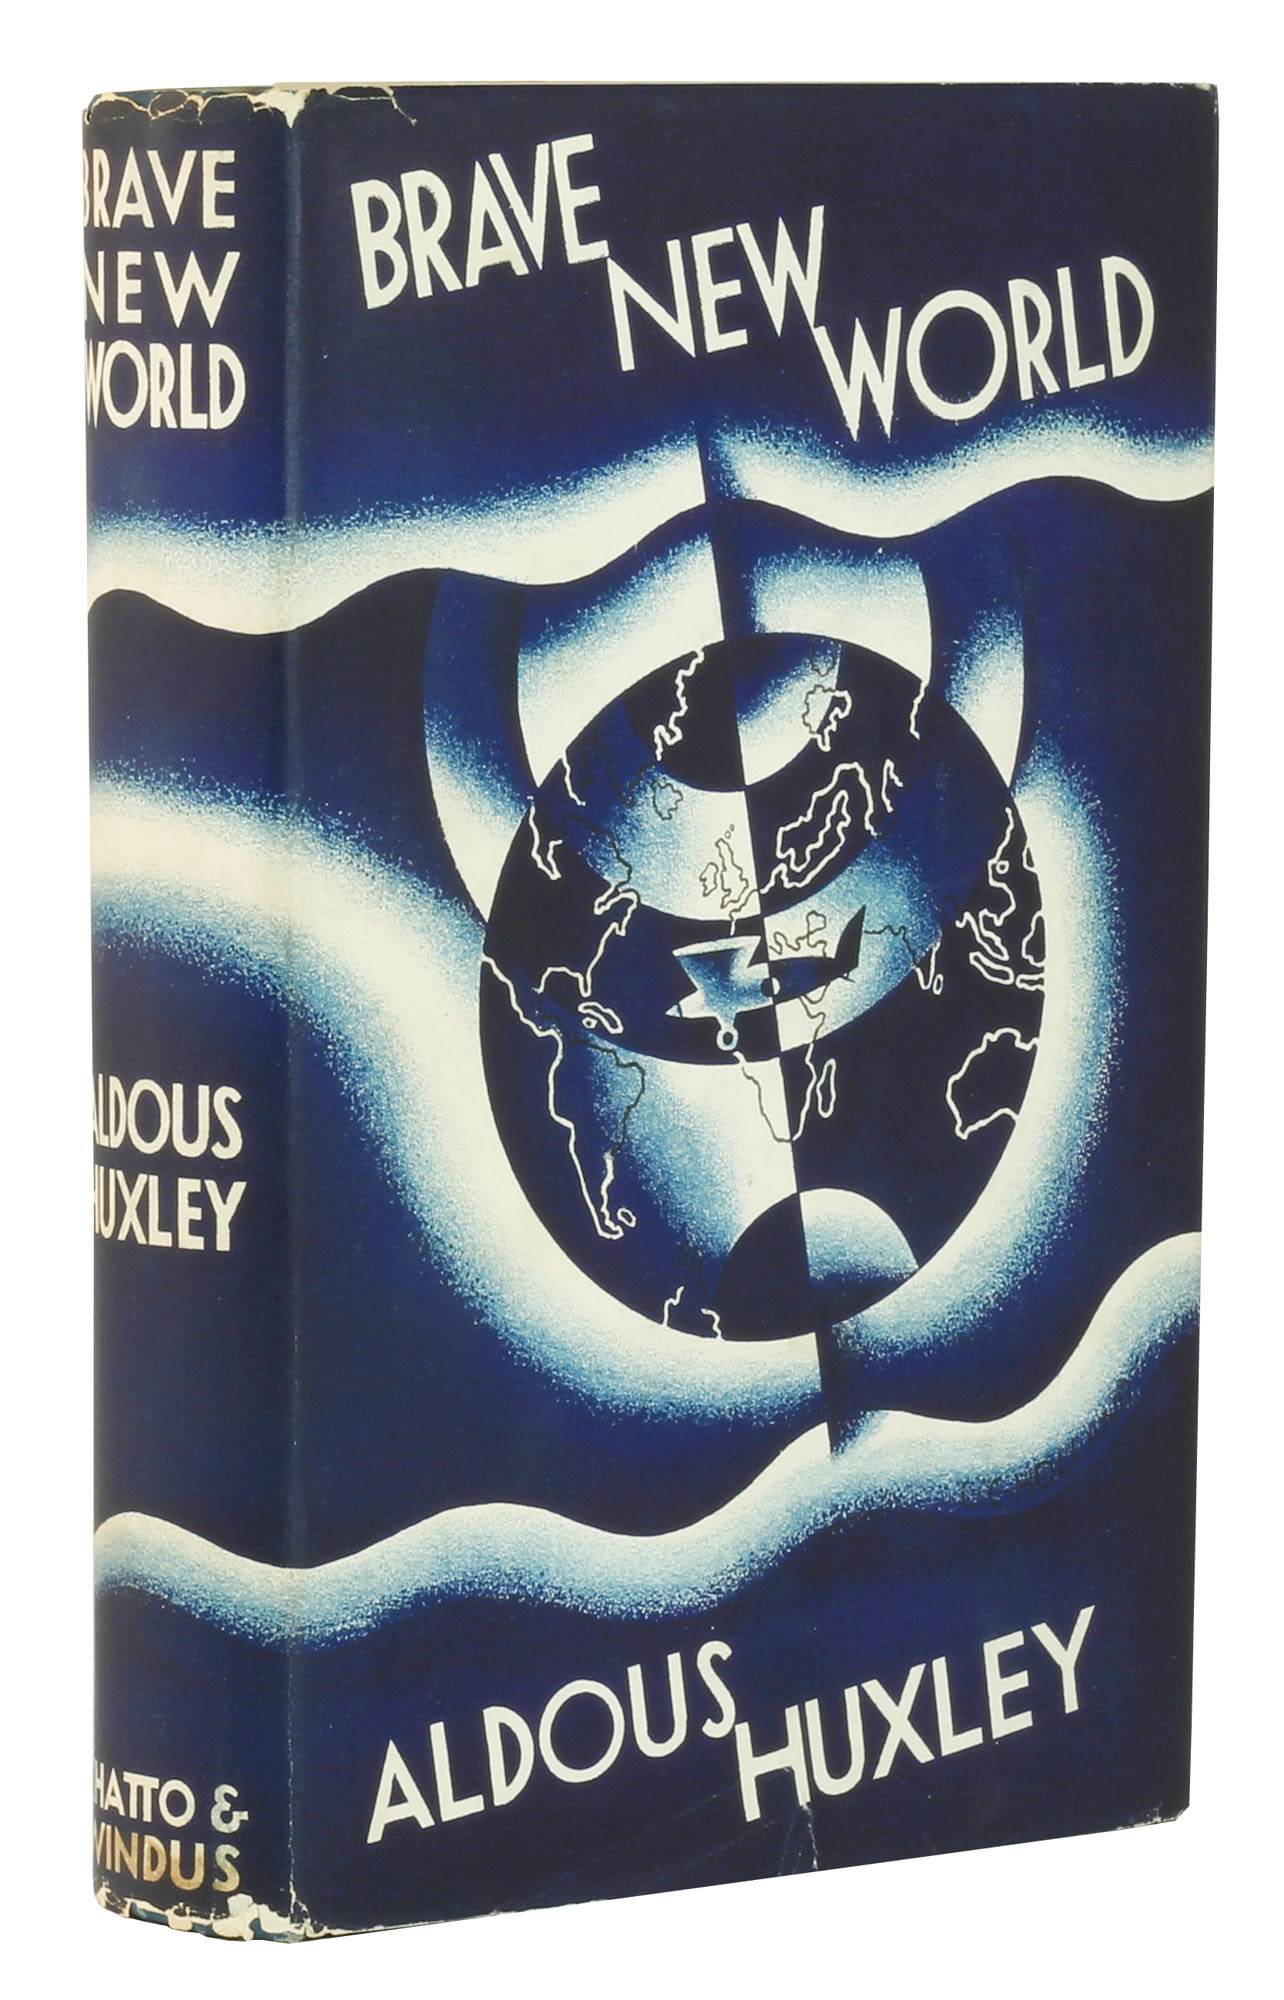 a summary of brave new world a novel by aldous huxley A short summary of aldous huxley's brave new world this free synopsis covers all the crucial plot points of brave new world  the novel opens in the central .